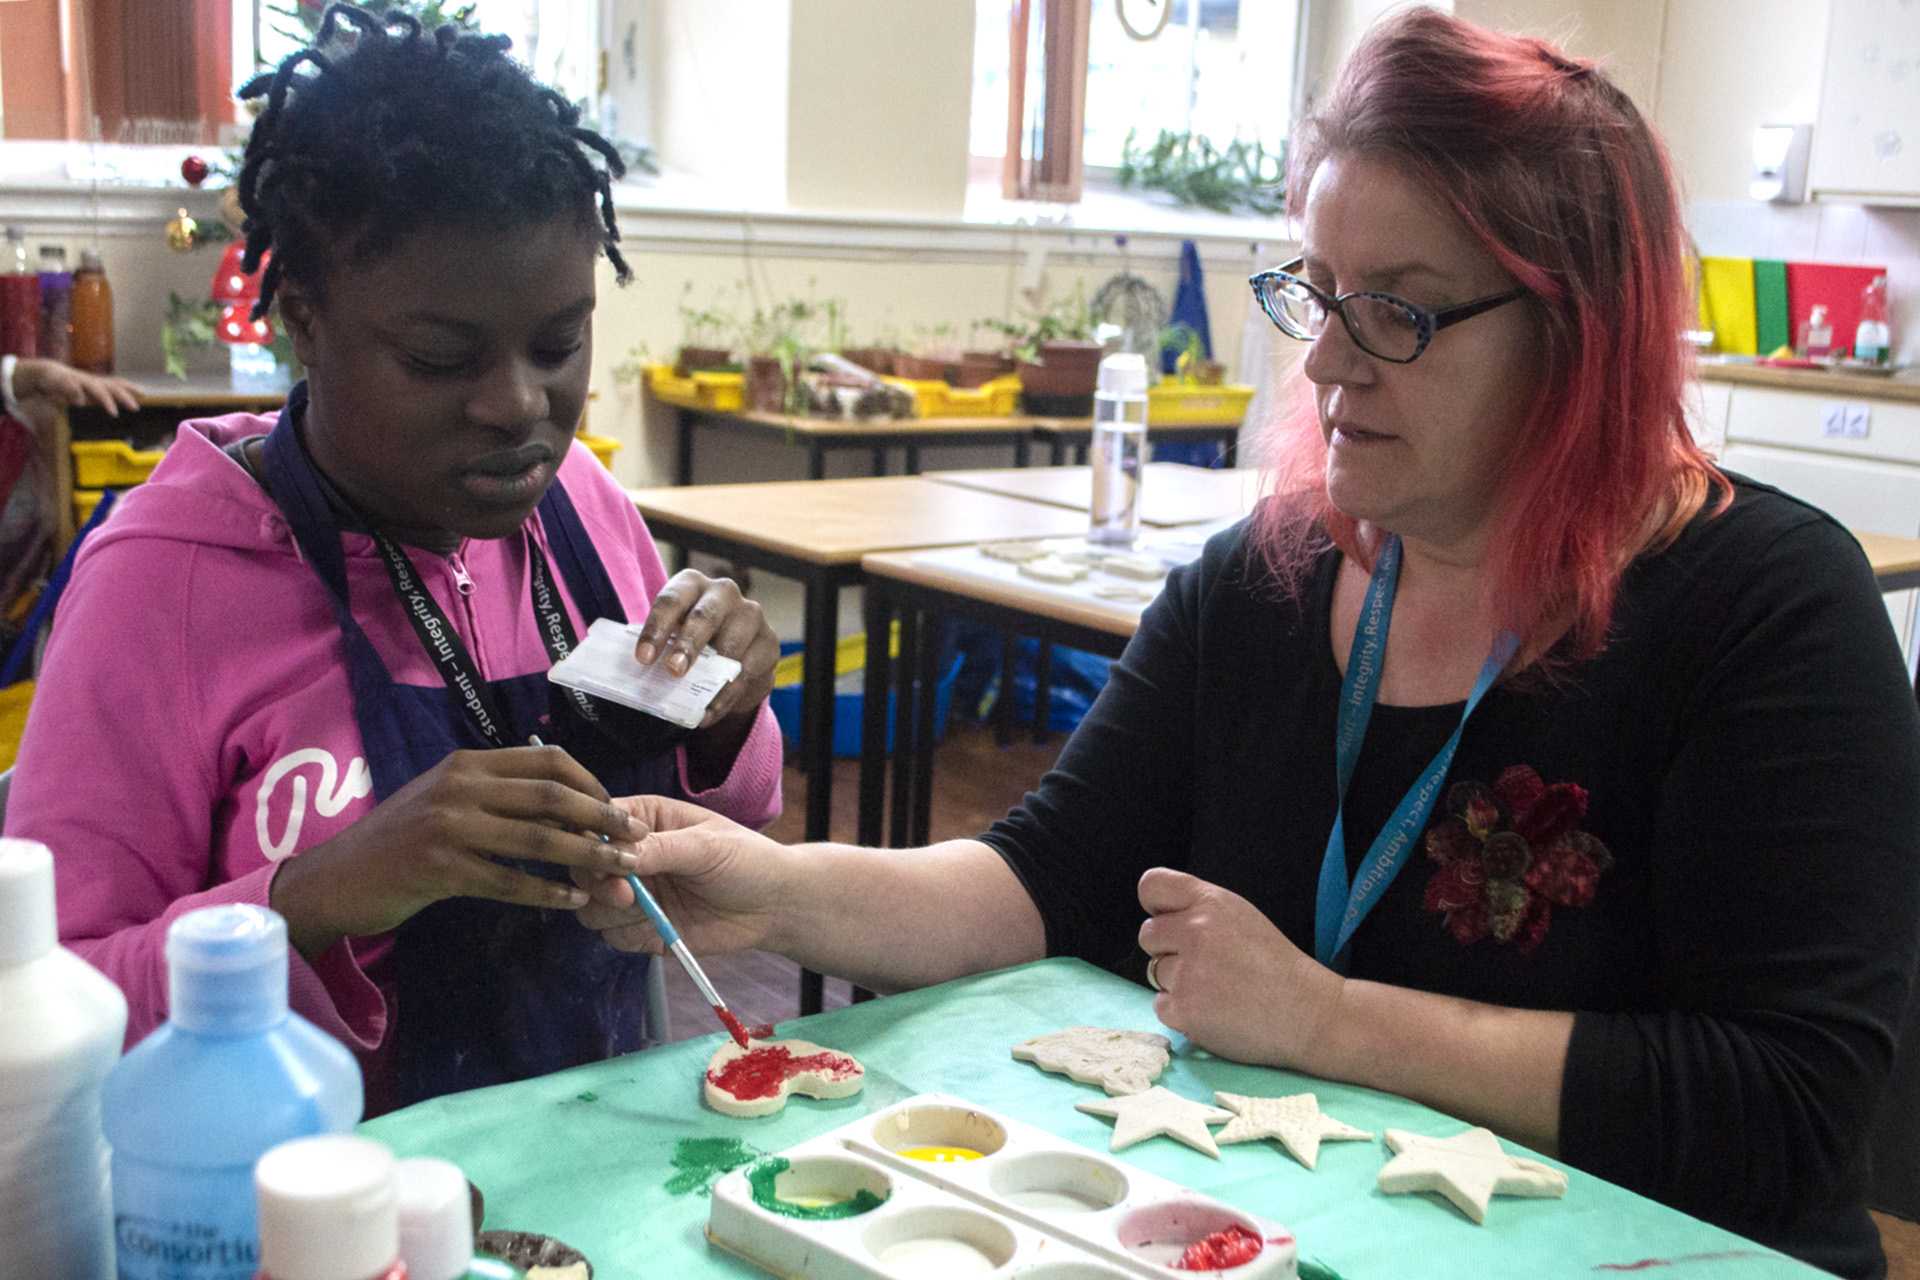 Tutor and Student using art and craft materials